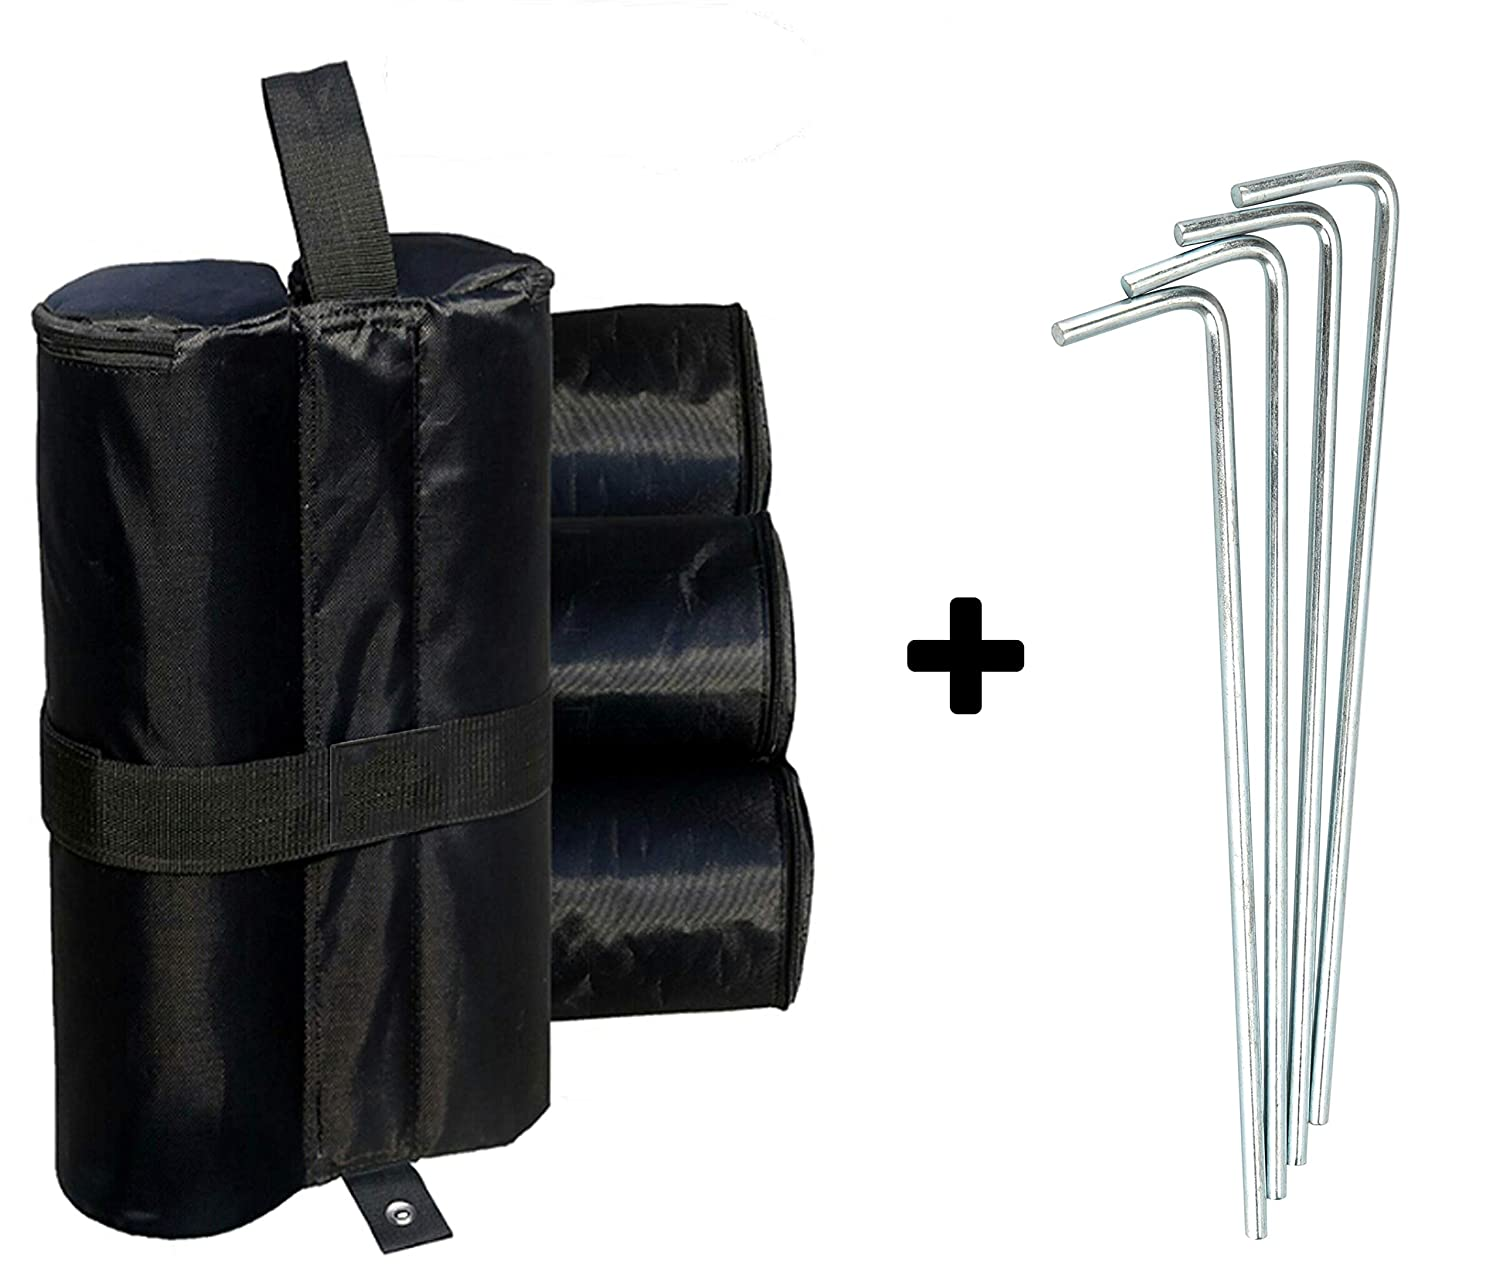 4 Pack Canopy Weight Bags, Heavy Duty Sand Bag for Tent Anchor Kit with Pegs Stakes HR-International